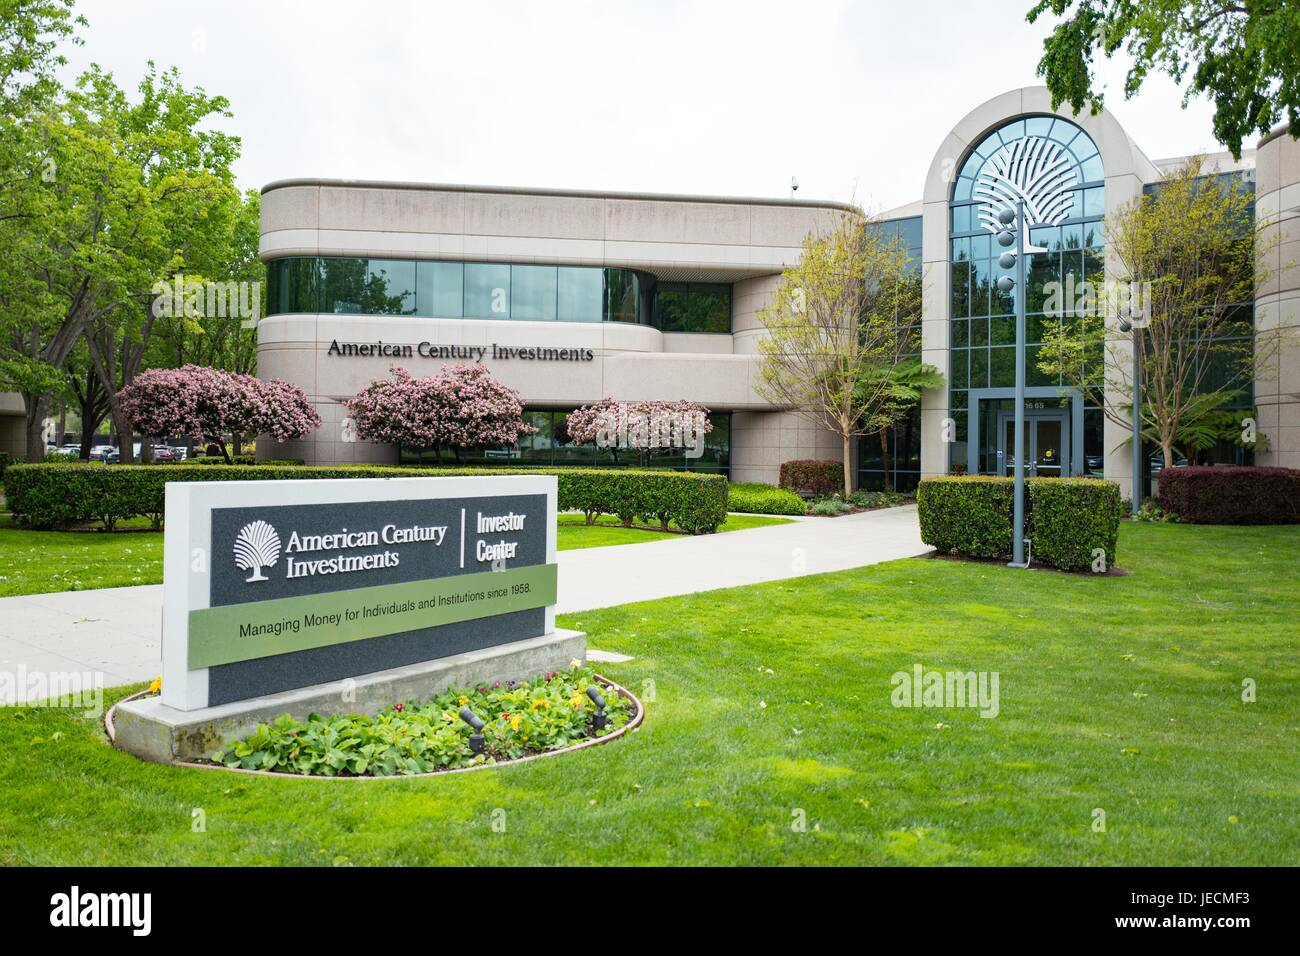 Headquarters, logo and signage for American Century Investments in the Silicon Valley town of Mountain View, California, - Stock Image